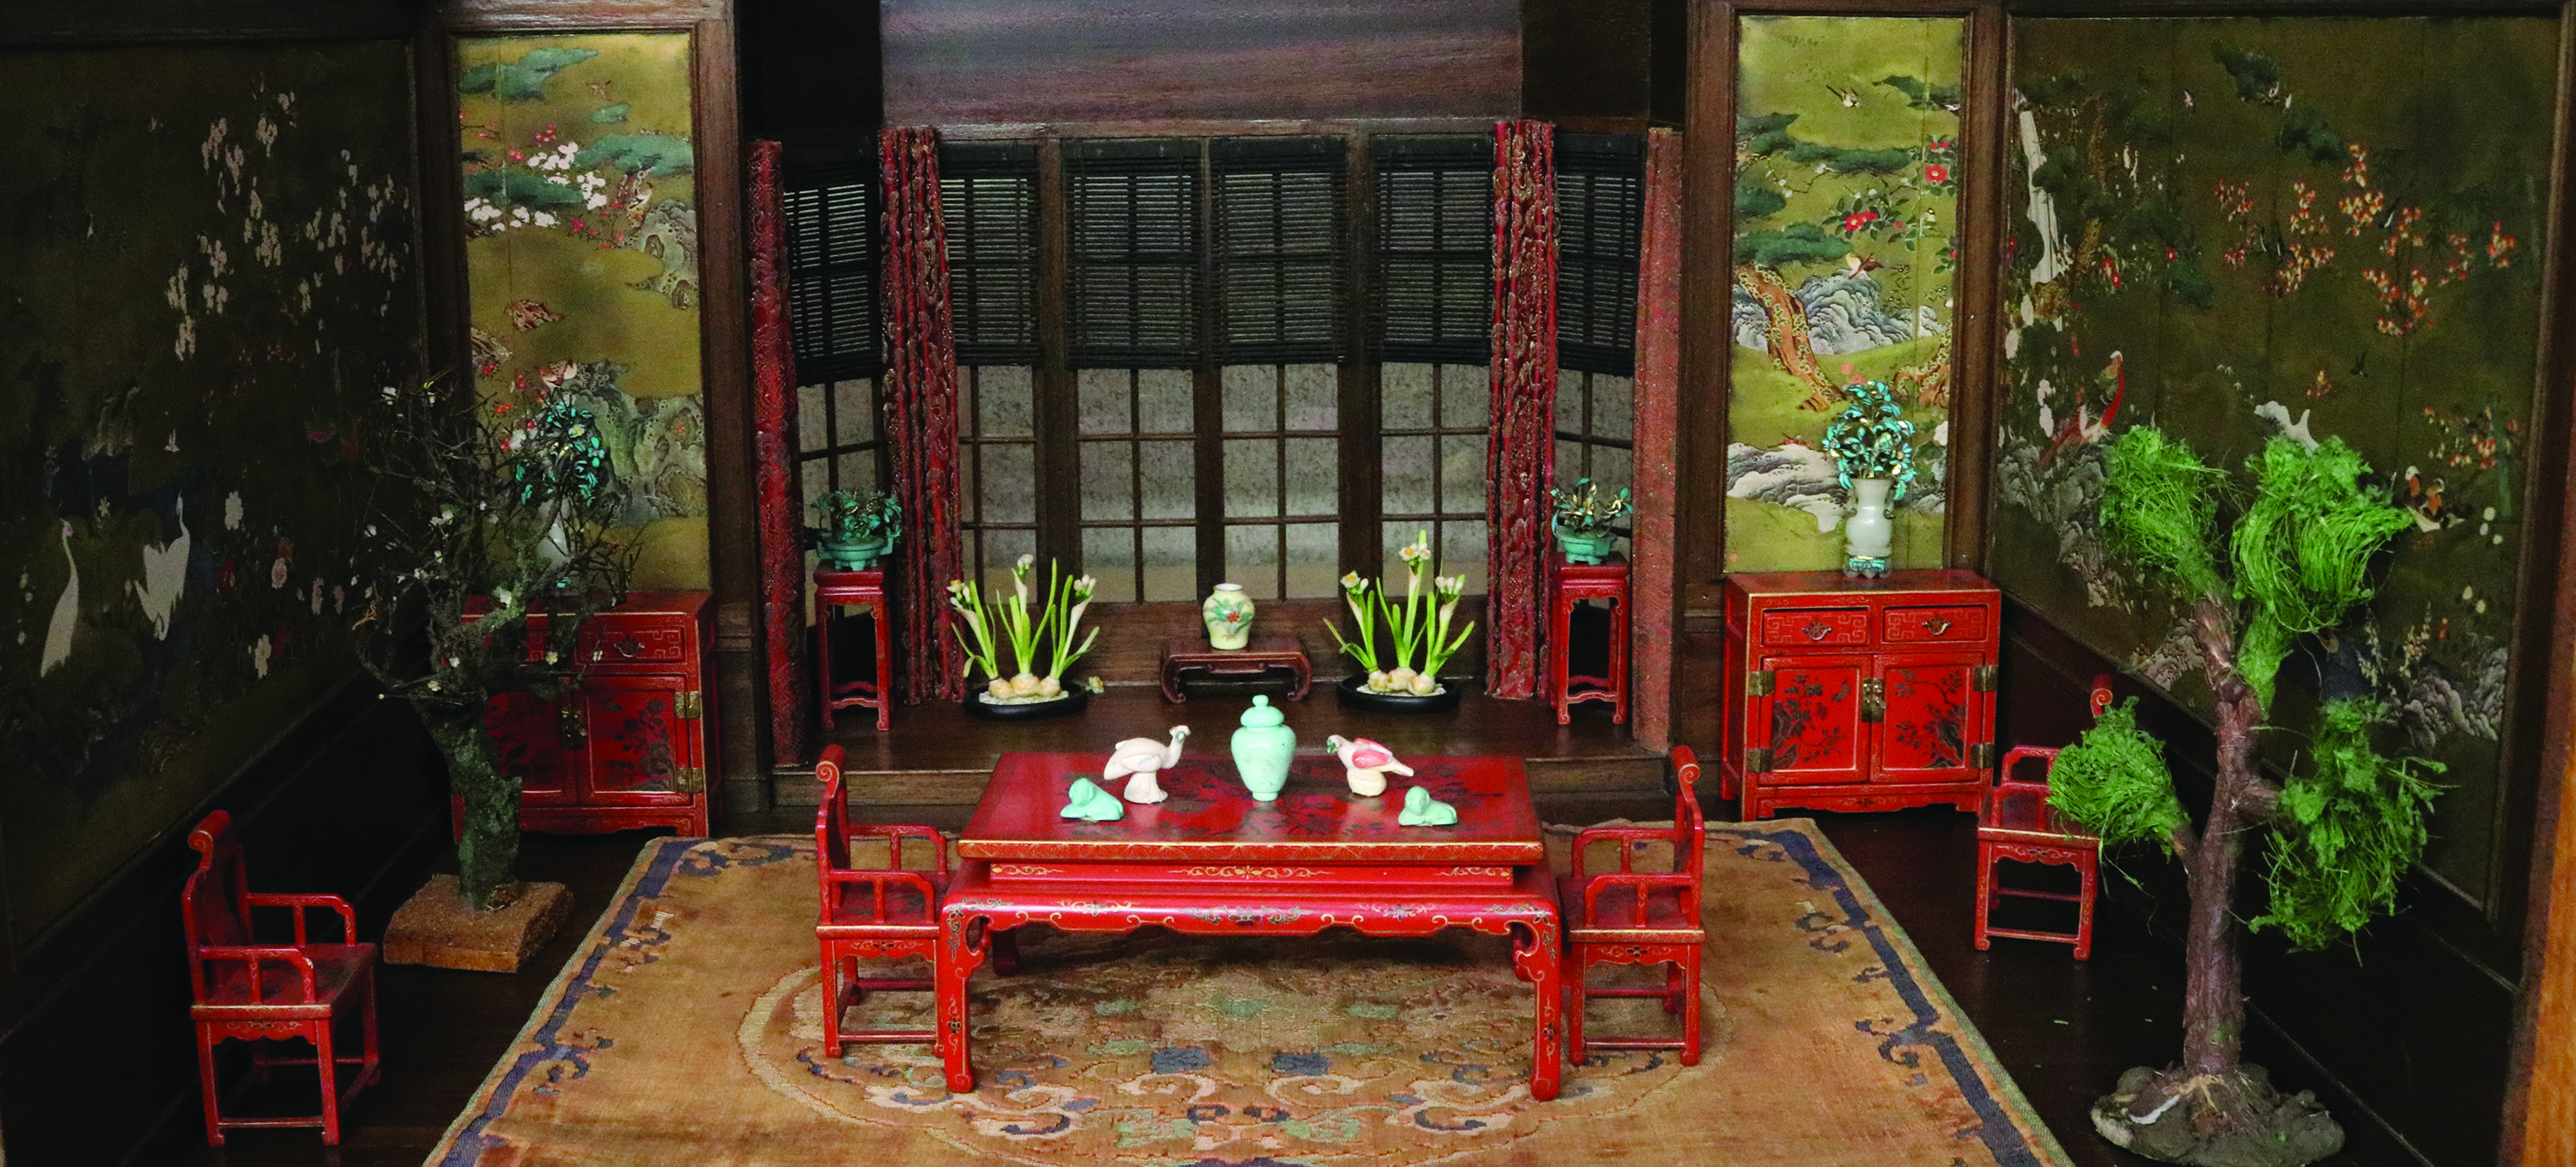 Miniature Chinese dining room by Frederick B. Hicks